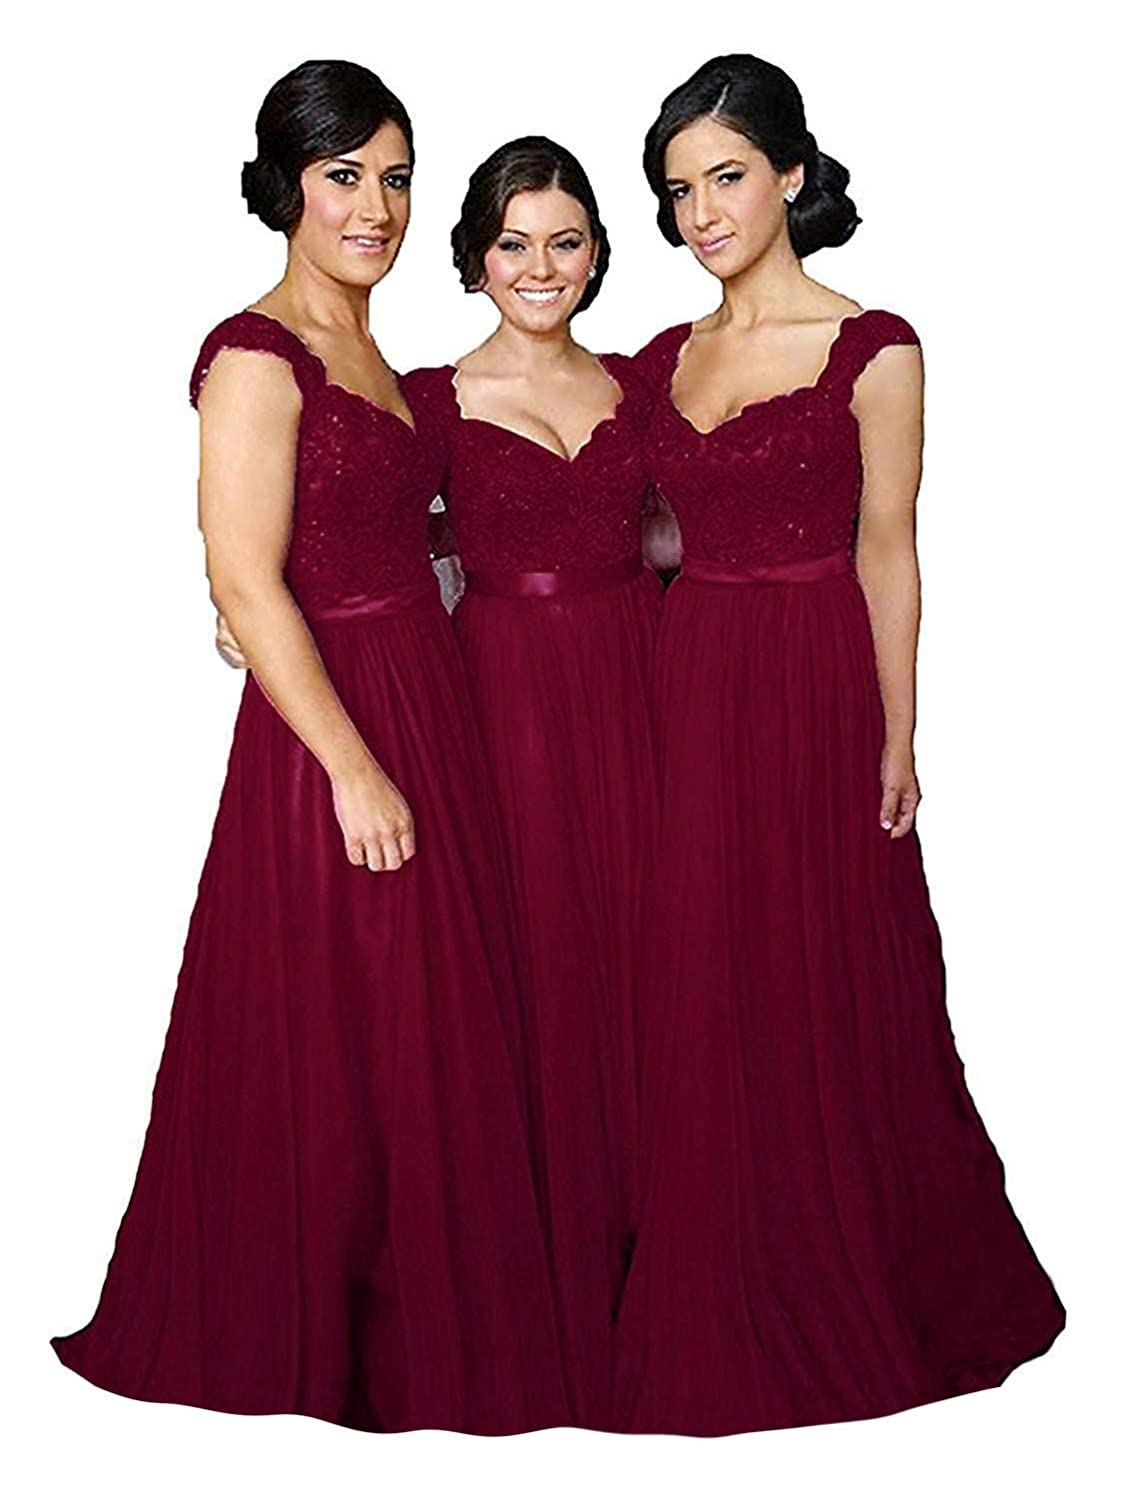 Burgundy Fanciest Women' Cap Sleeve Lace Bridesmaid Dresses Long Wedding Party Gowns